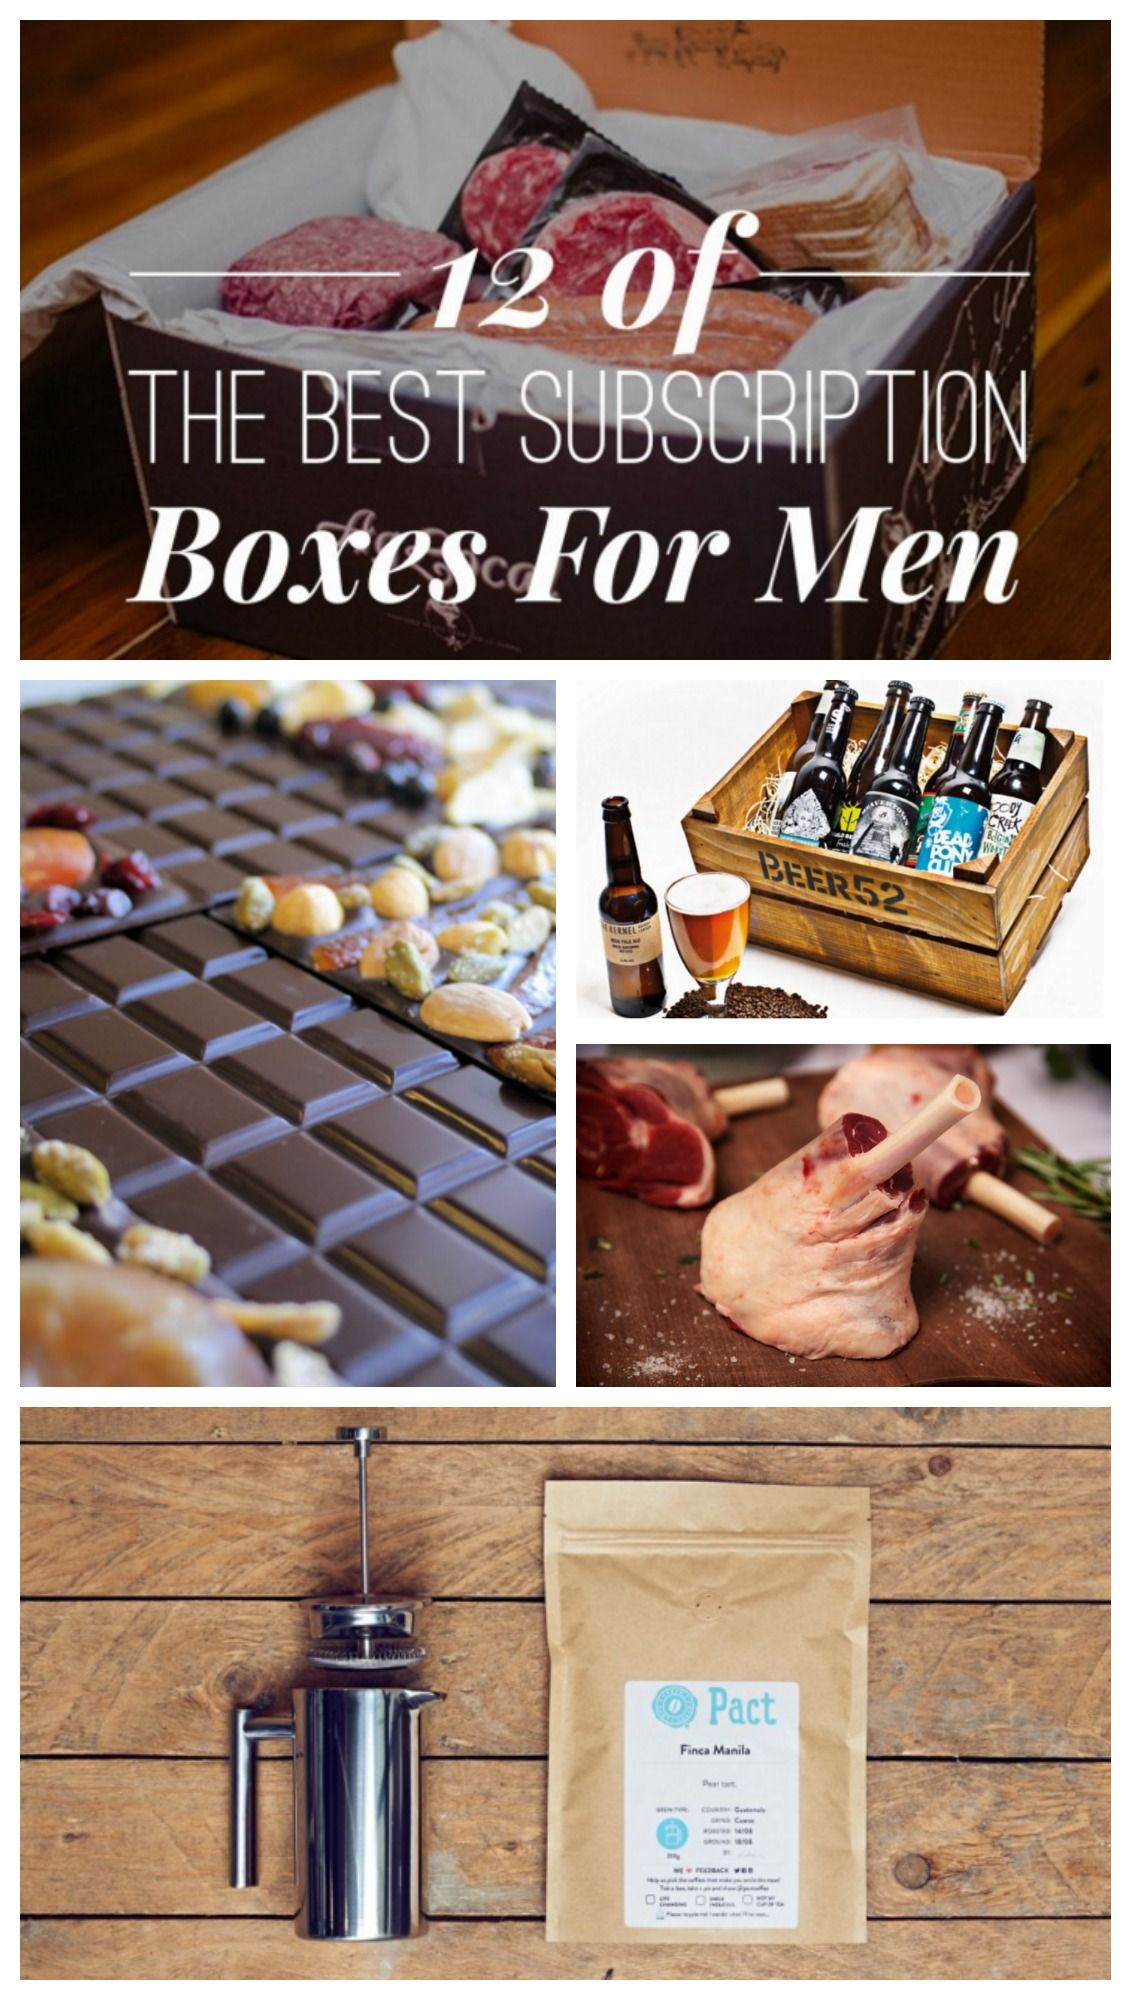 12 of the Best Subscription Boxes for Men Subscription